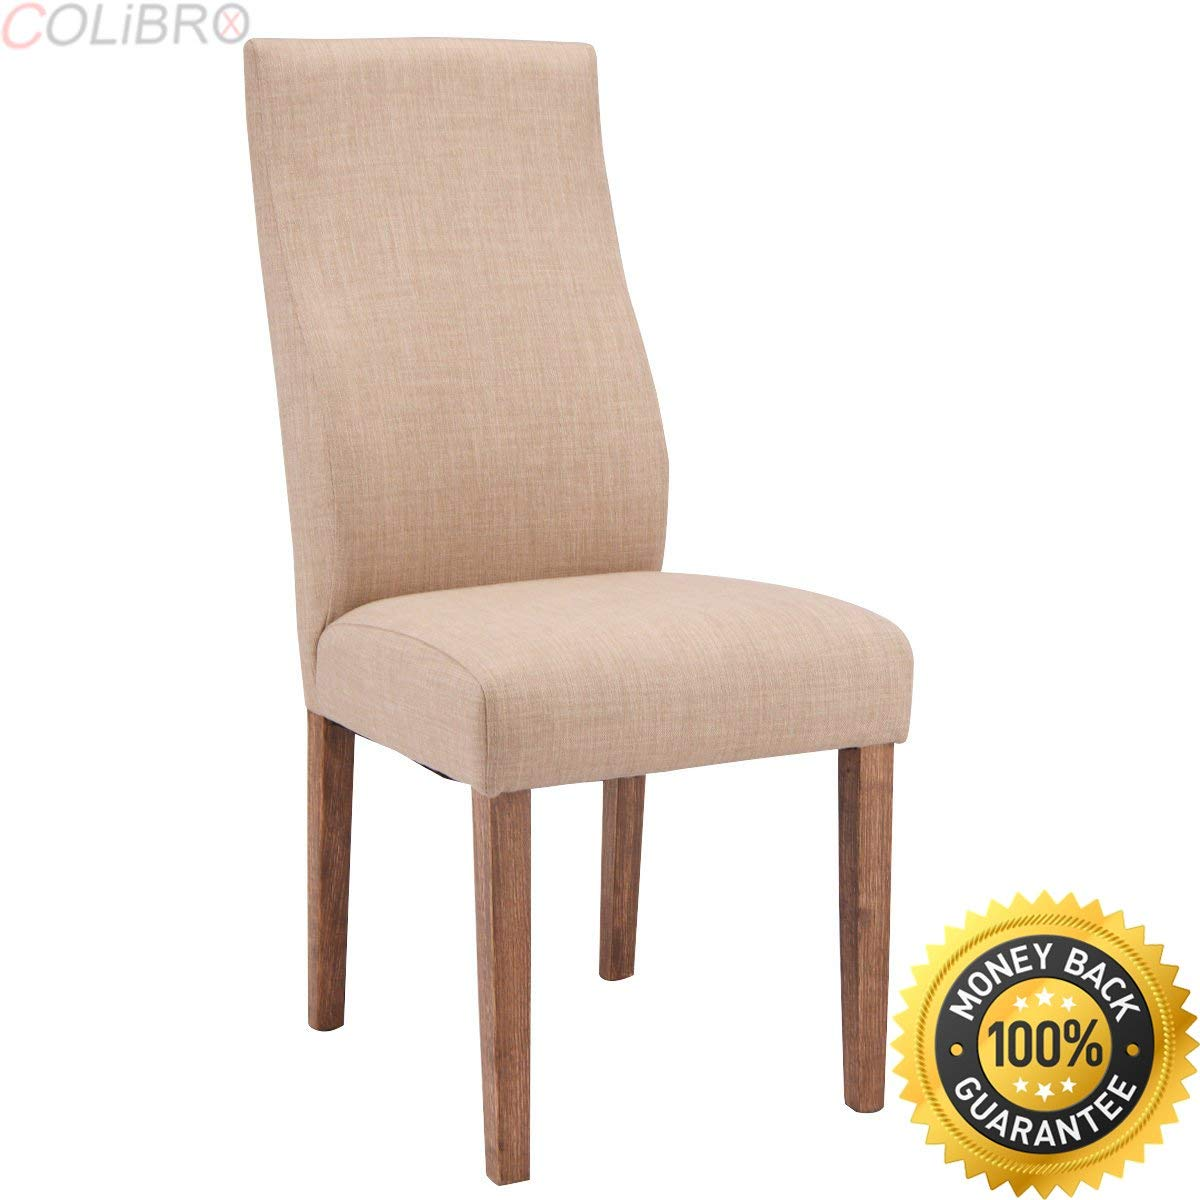 small accent chairs find line dining table with get quotations colibrox set fabric upholstered armless home furniture new room sets solid wood farmhouse sofa bangalore matching